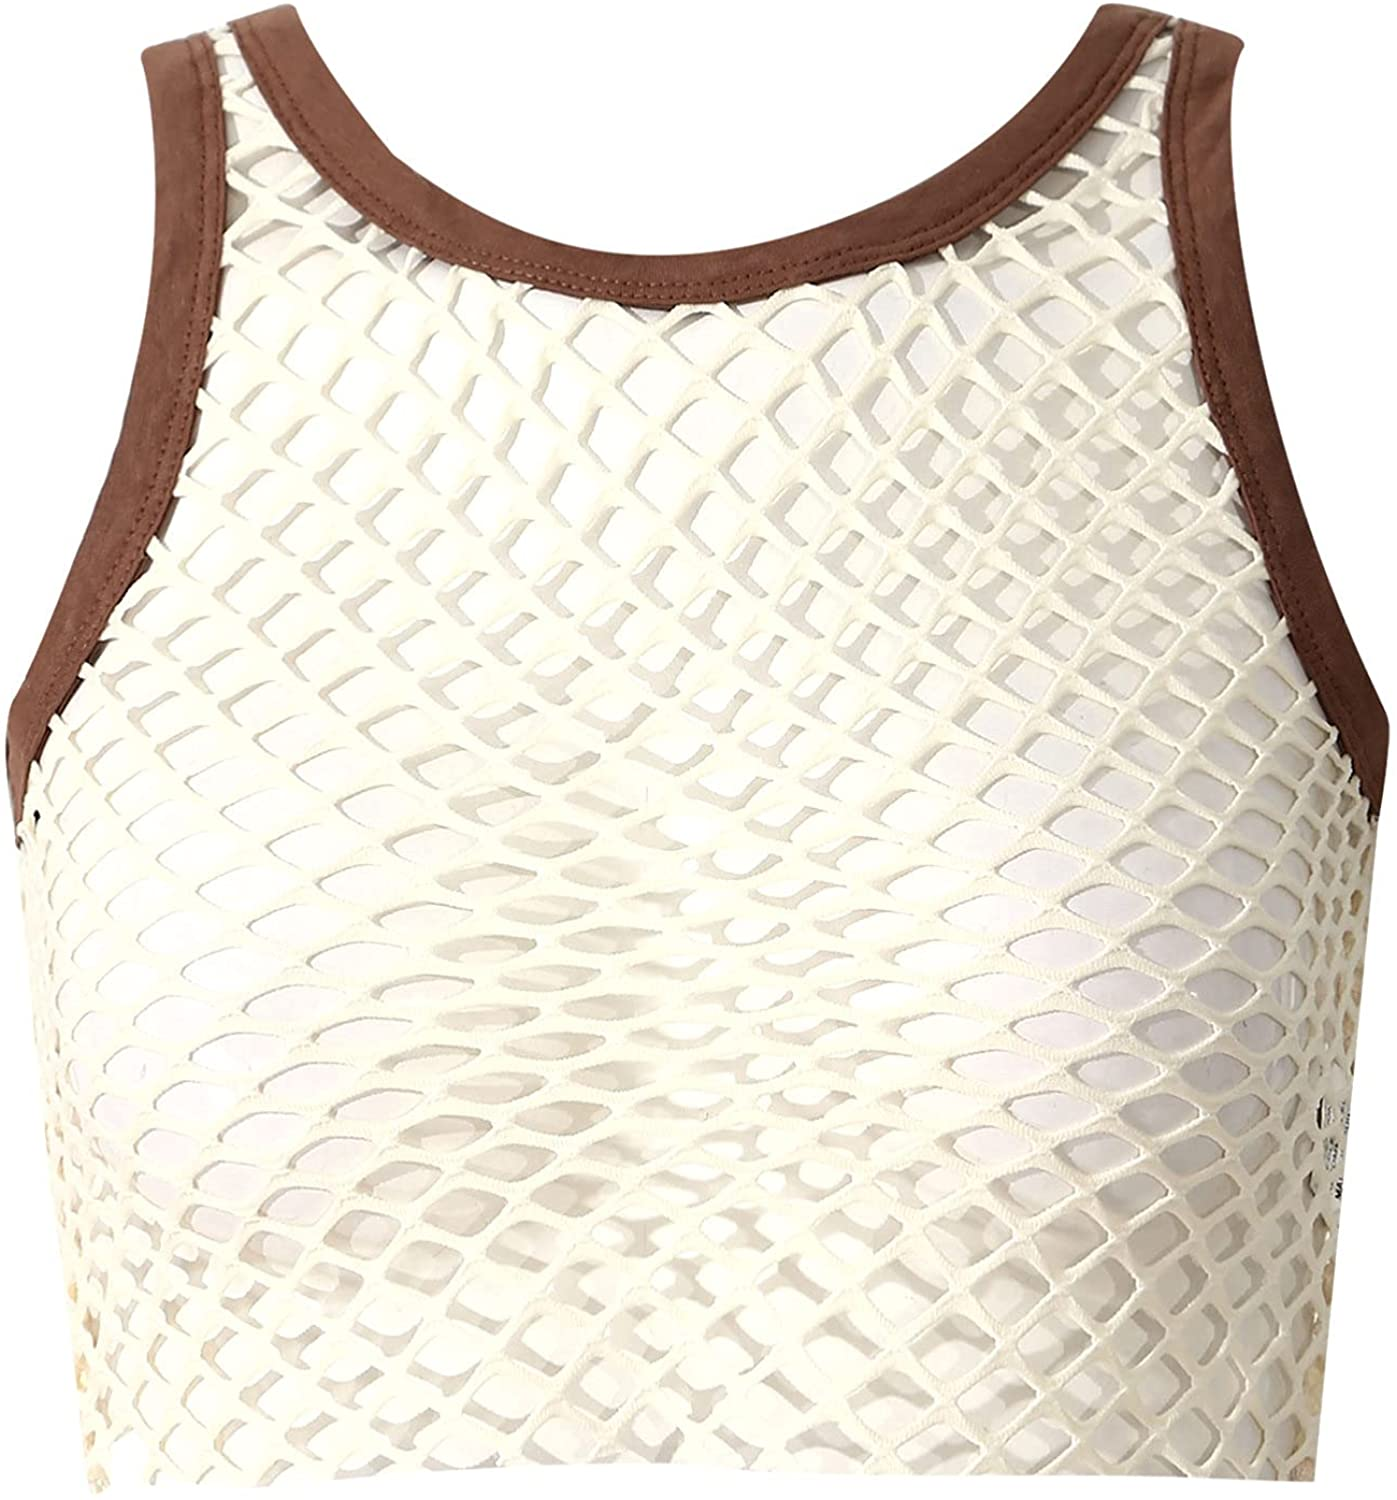 JEEYJOO Women Fashion Hollow Out Mesh Crop Top Sleeveless Cropped T-Shirt Vest